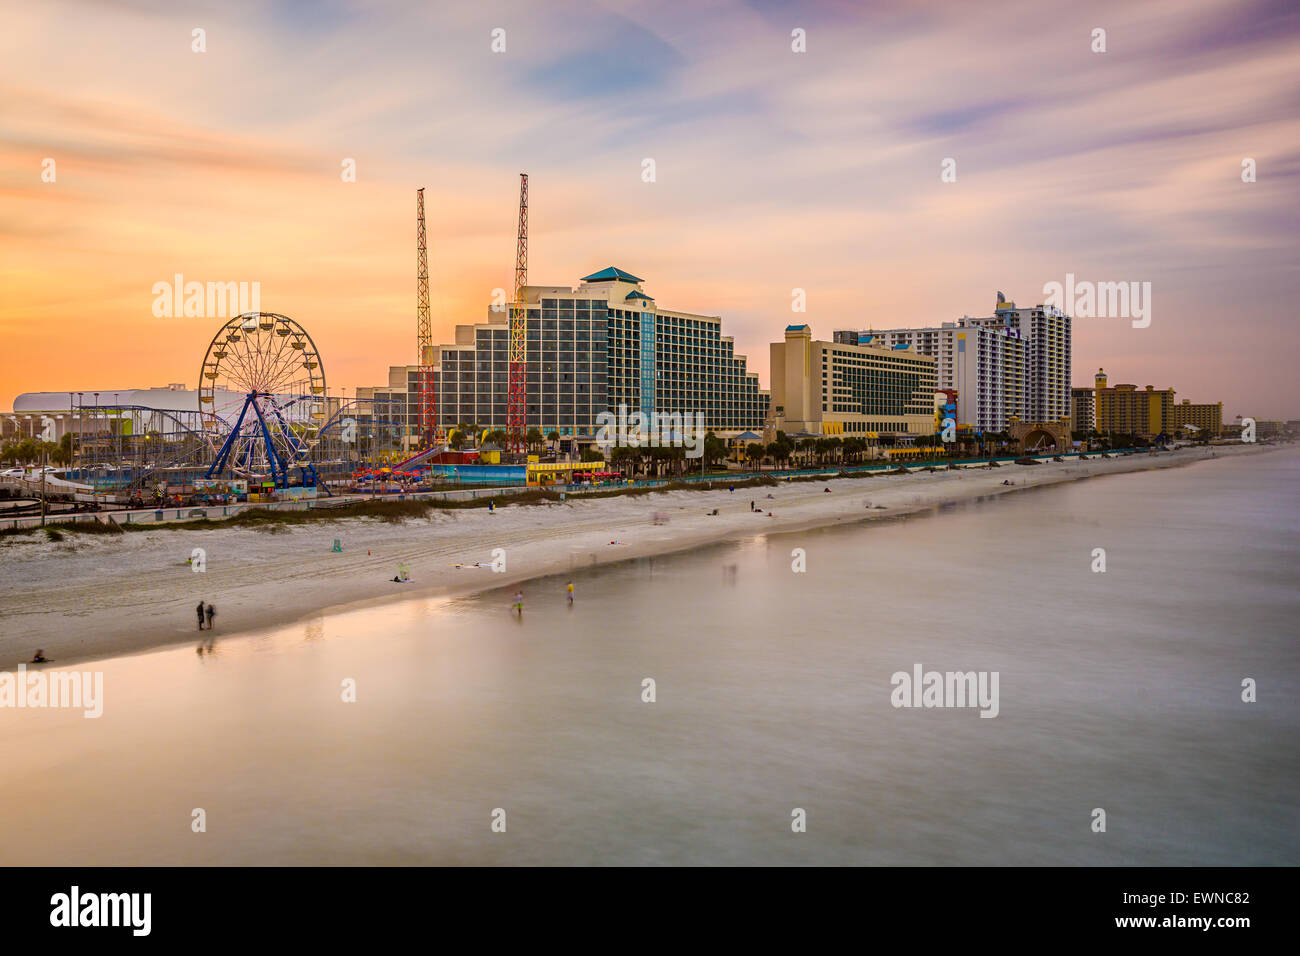 Daytona Beach, Florida, USA resorts skyline. - Stock Image